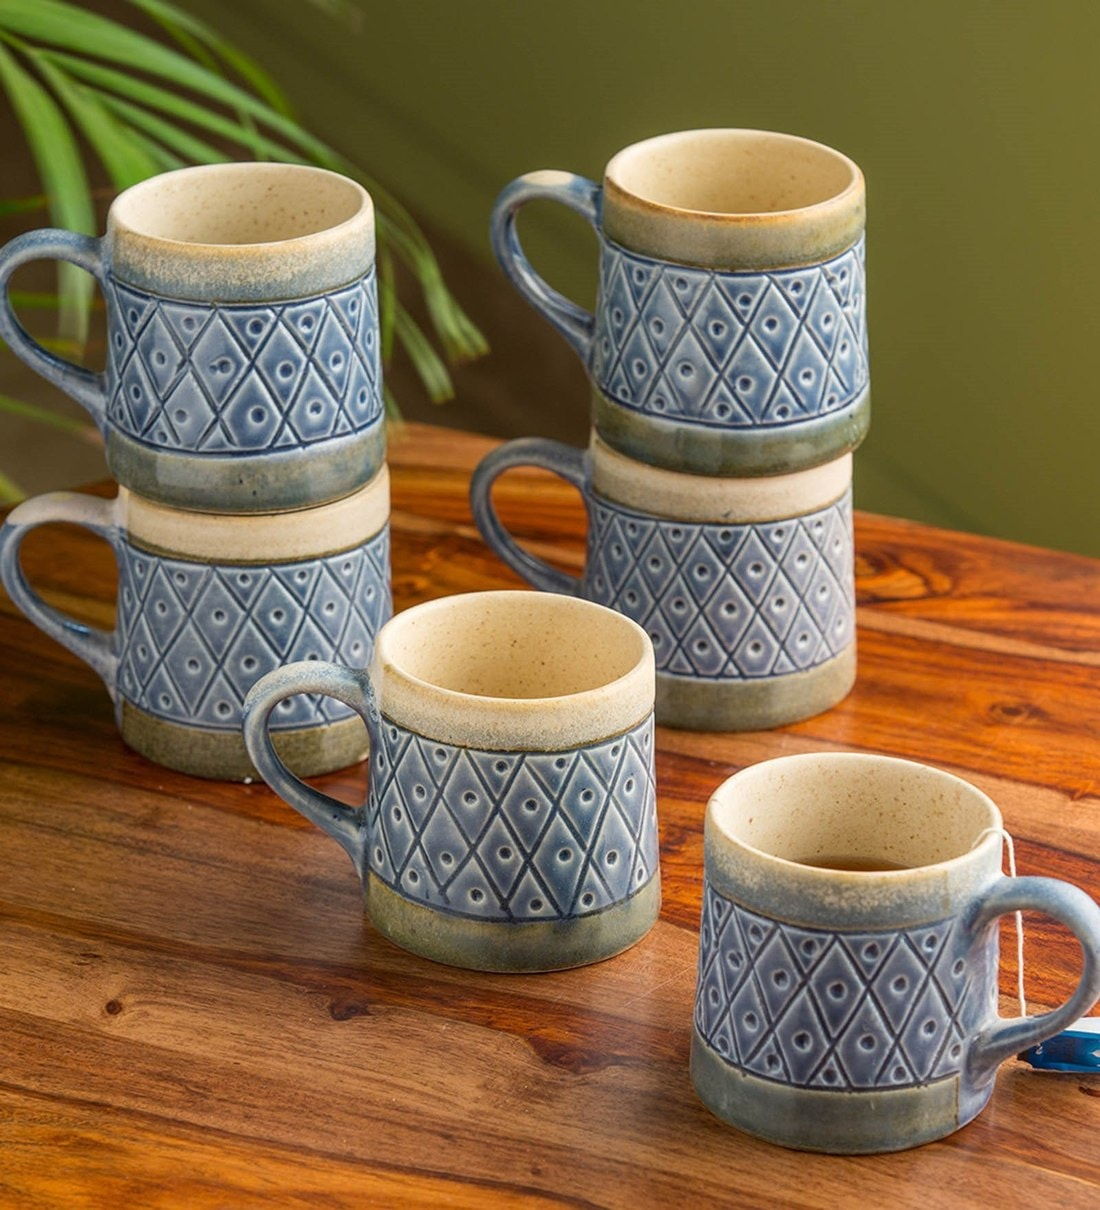 Buy Ceramic 200 Ml Hand Carved Hand Painted Studio Pottery Tea Cups Set Of 6 By Exclusivelane Online Cups Saucers Cups Saucers Discontinued Pepperfry Product